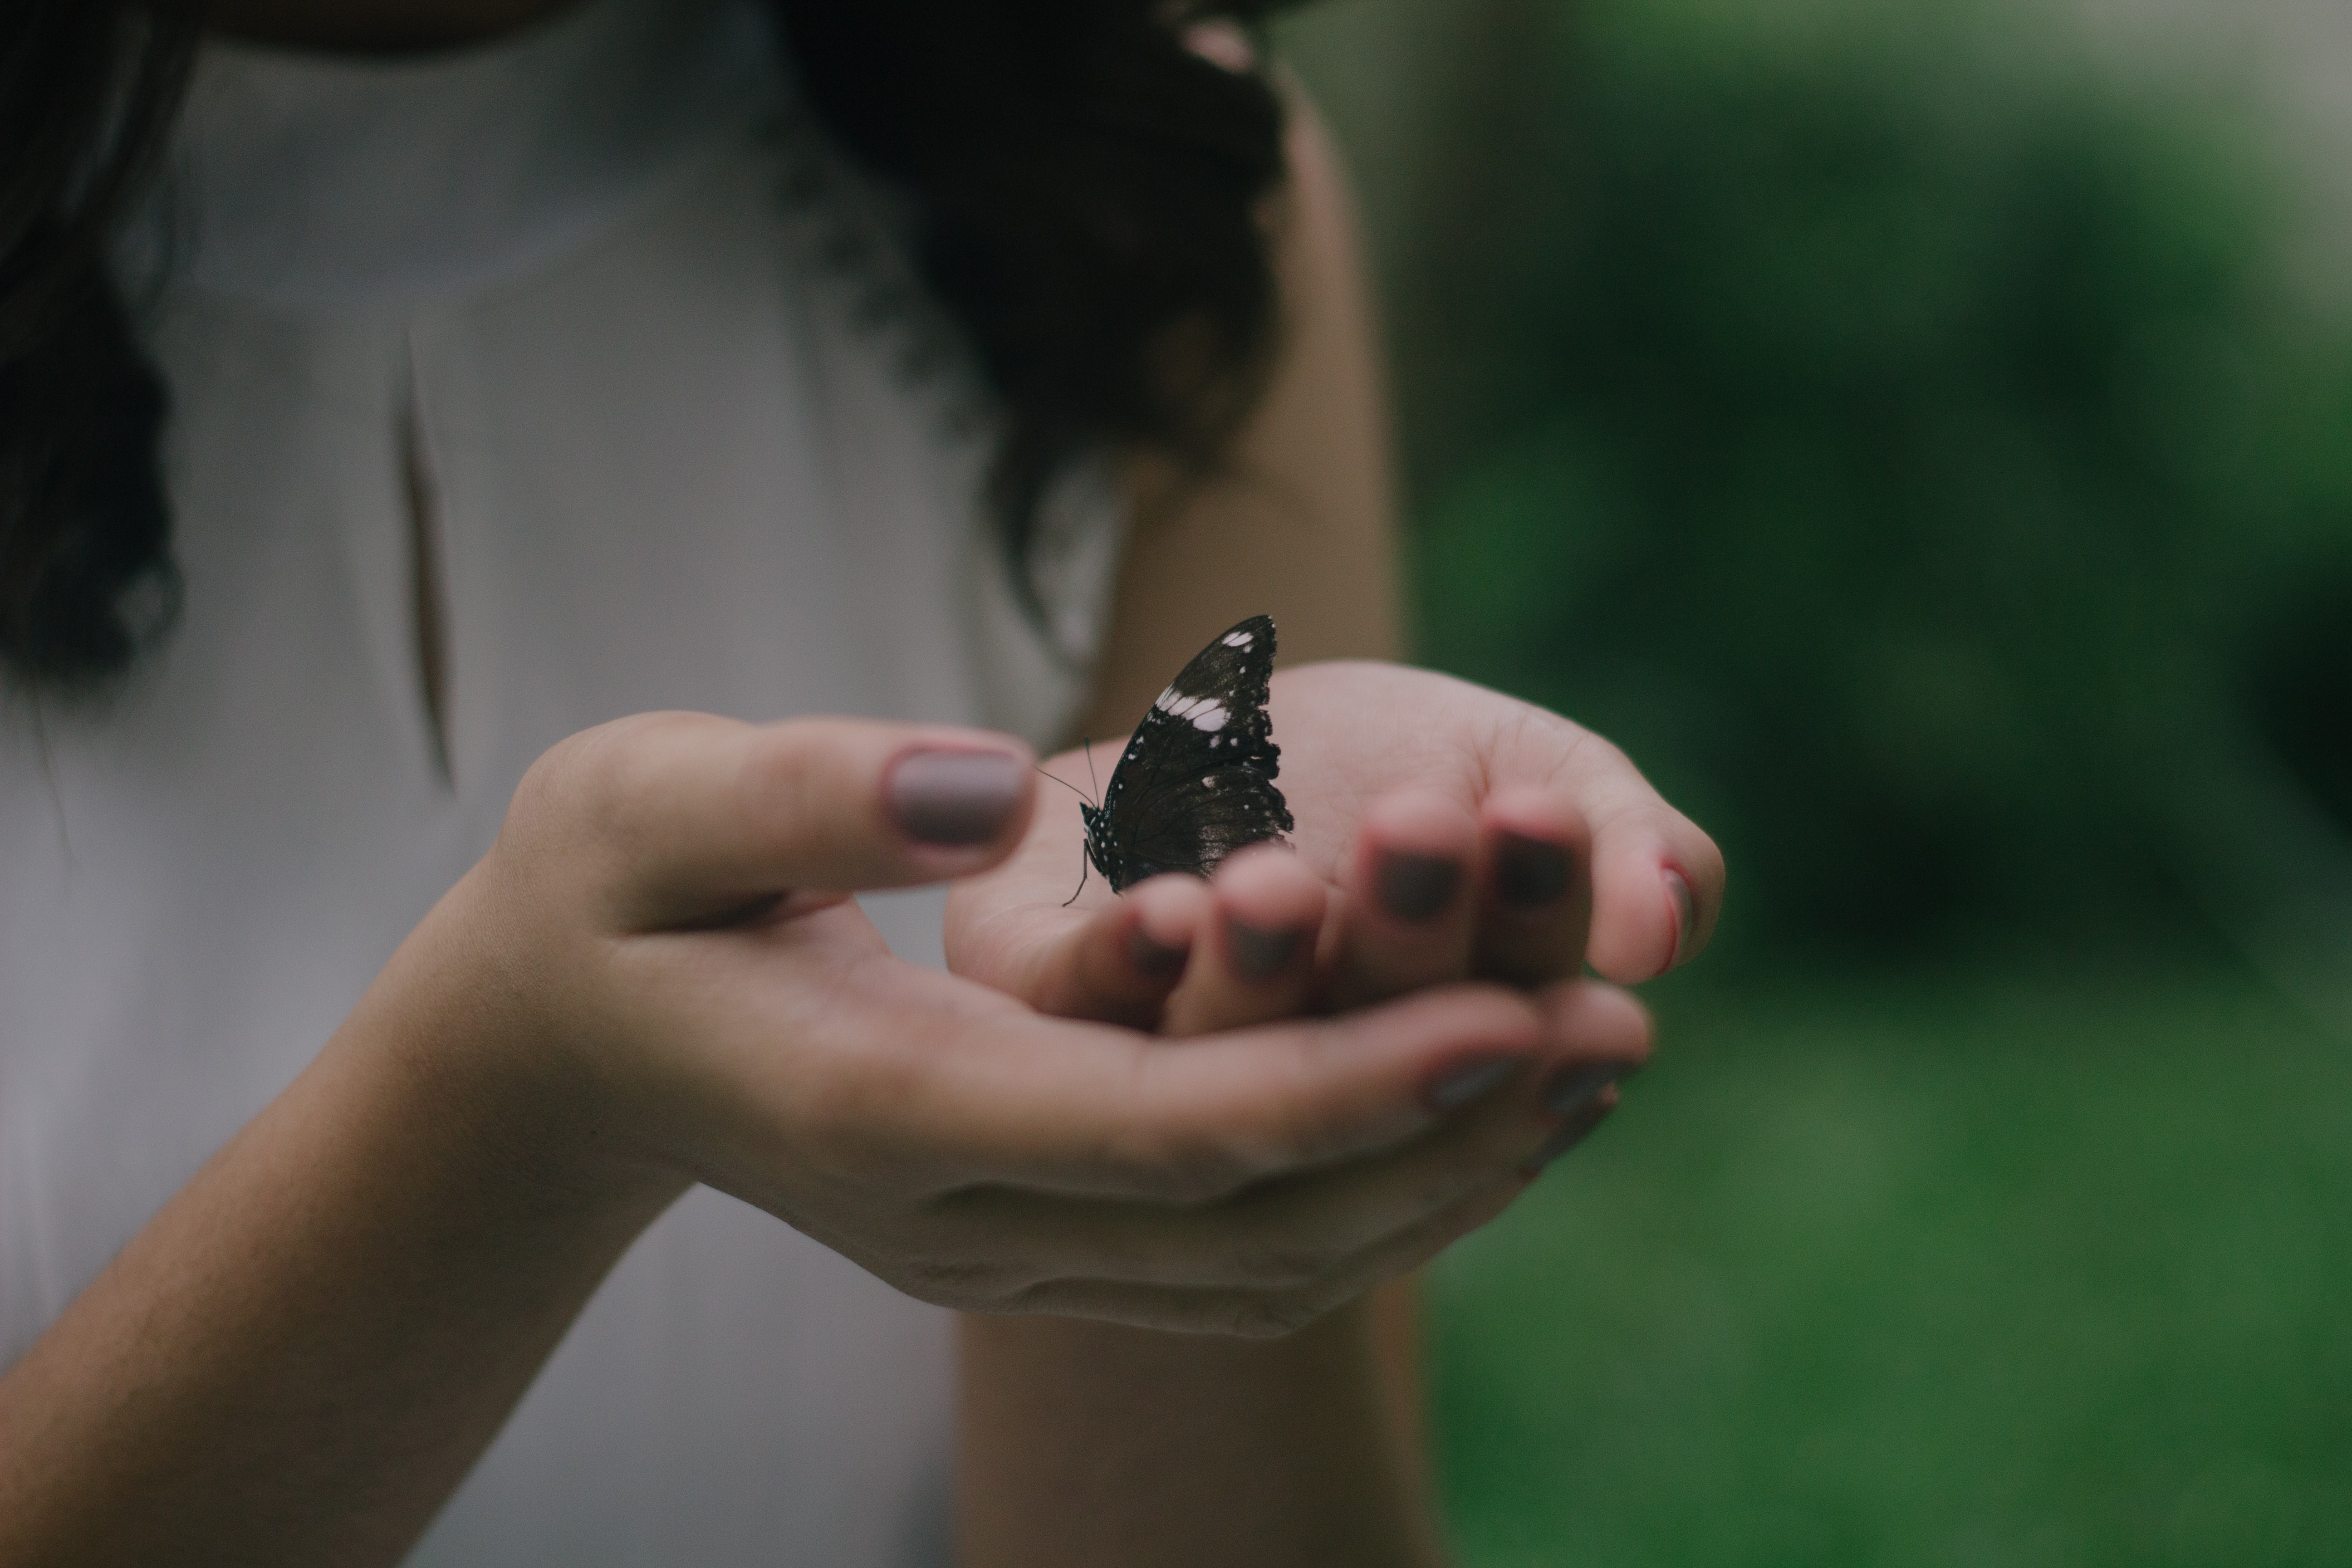 black butterfly on woman's palm